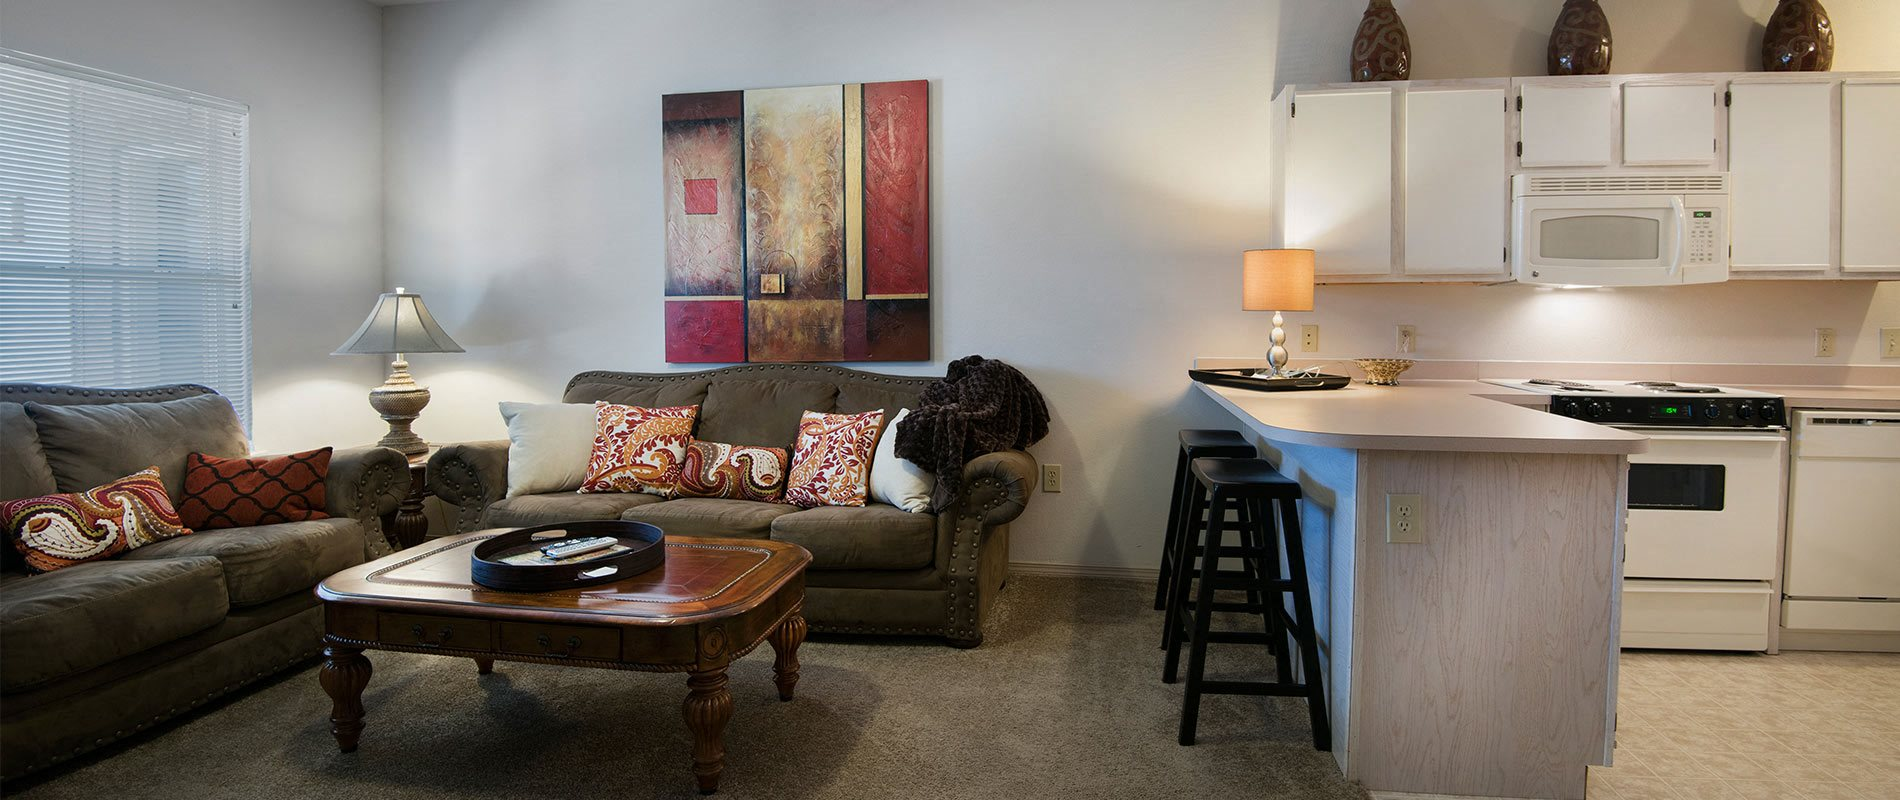 Fayetteville homepagegallery 2